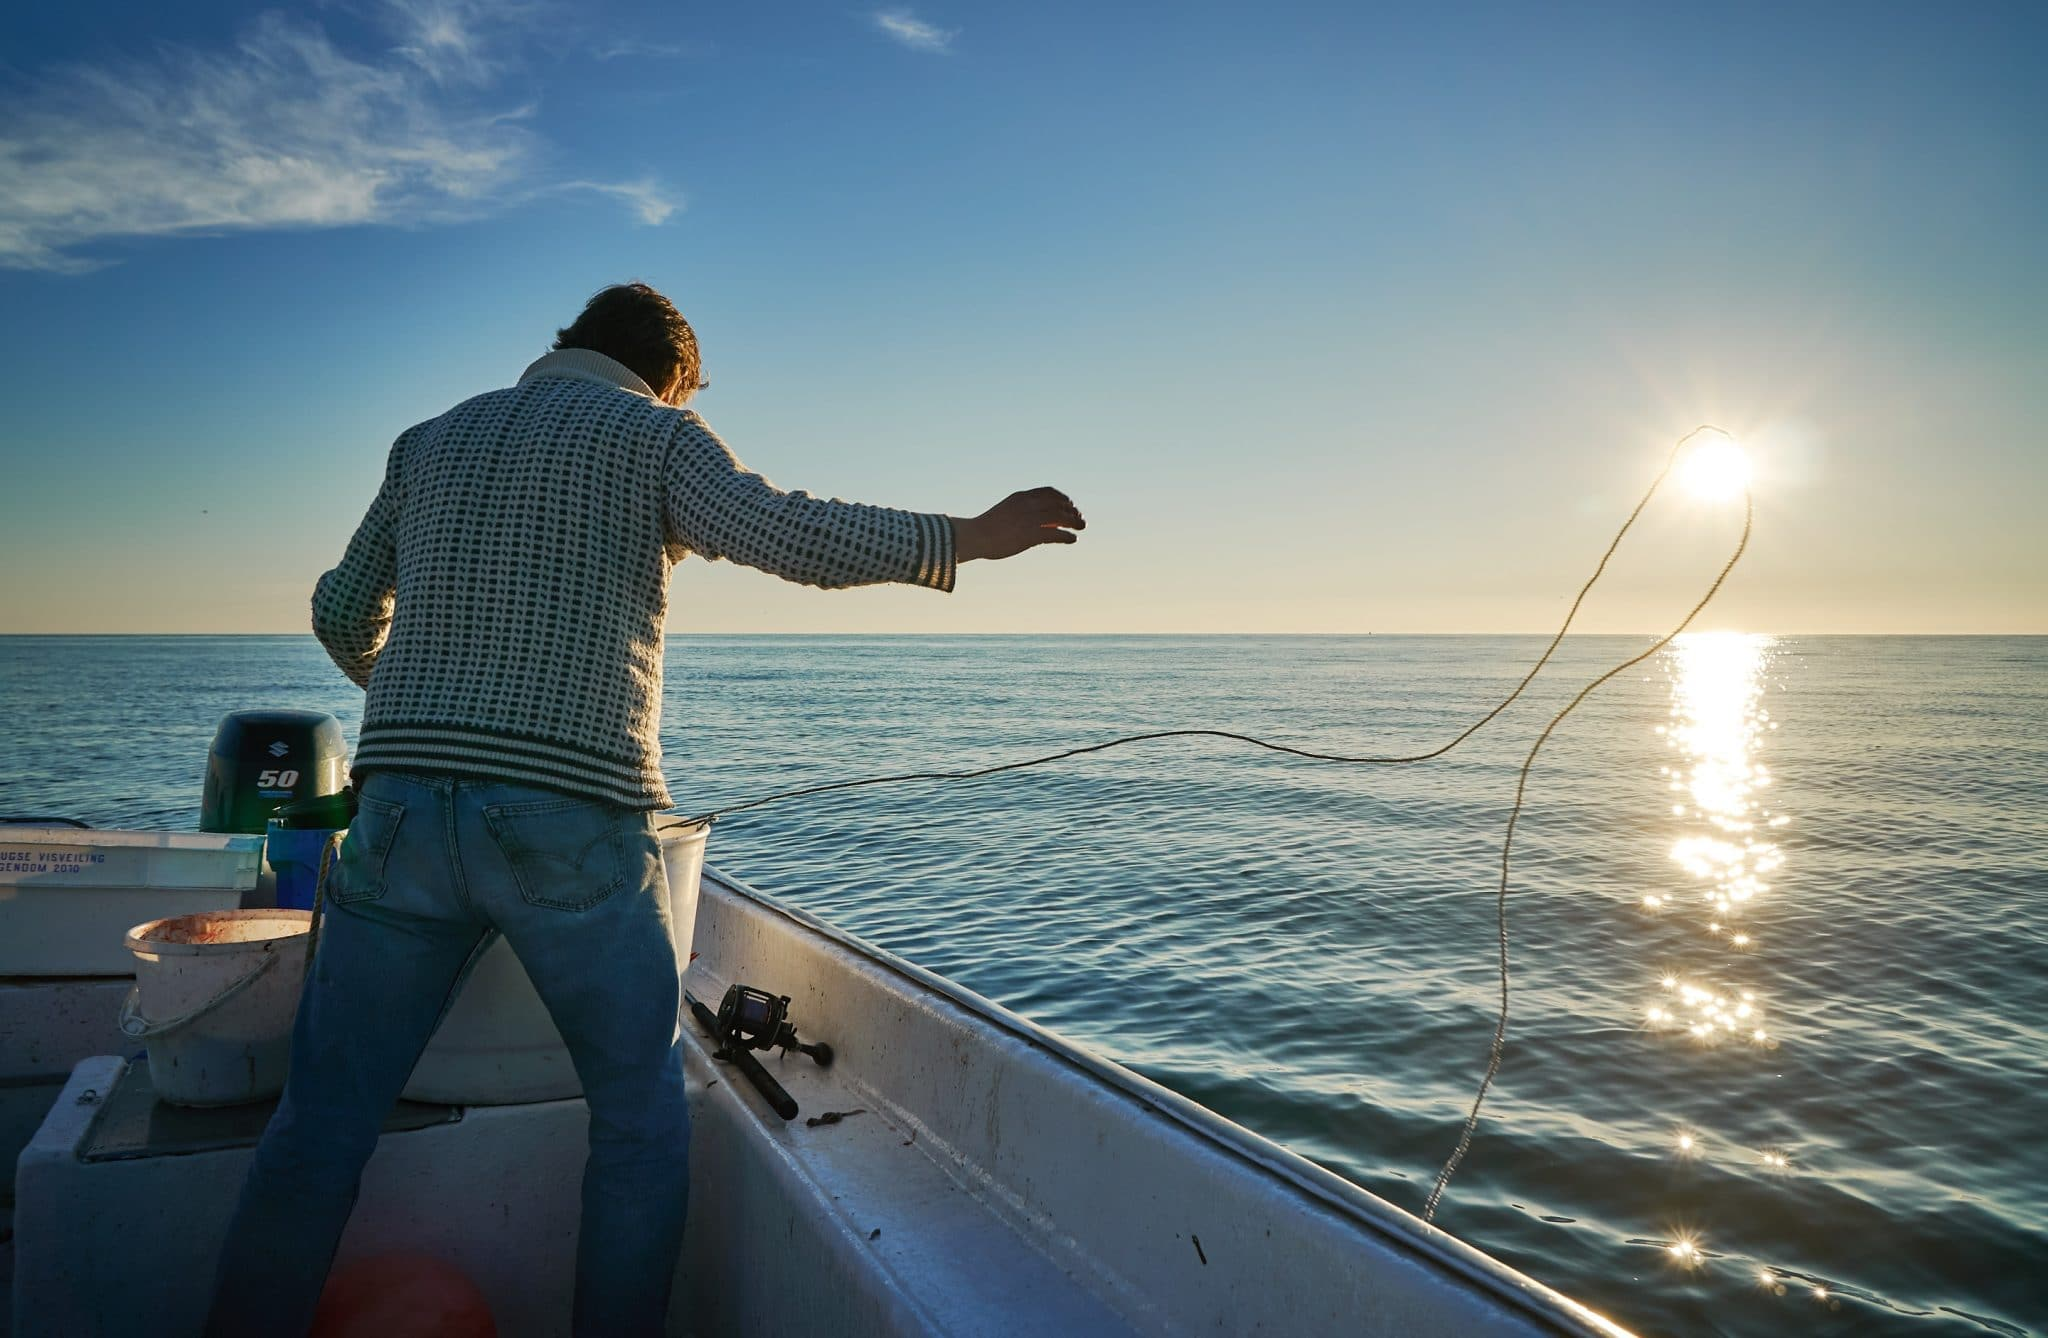 Man casting a line on a fishing boat